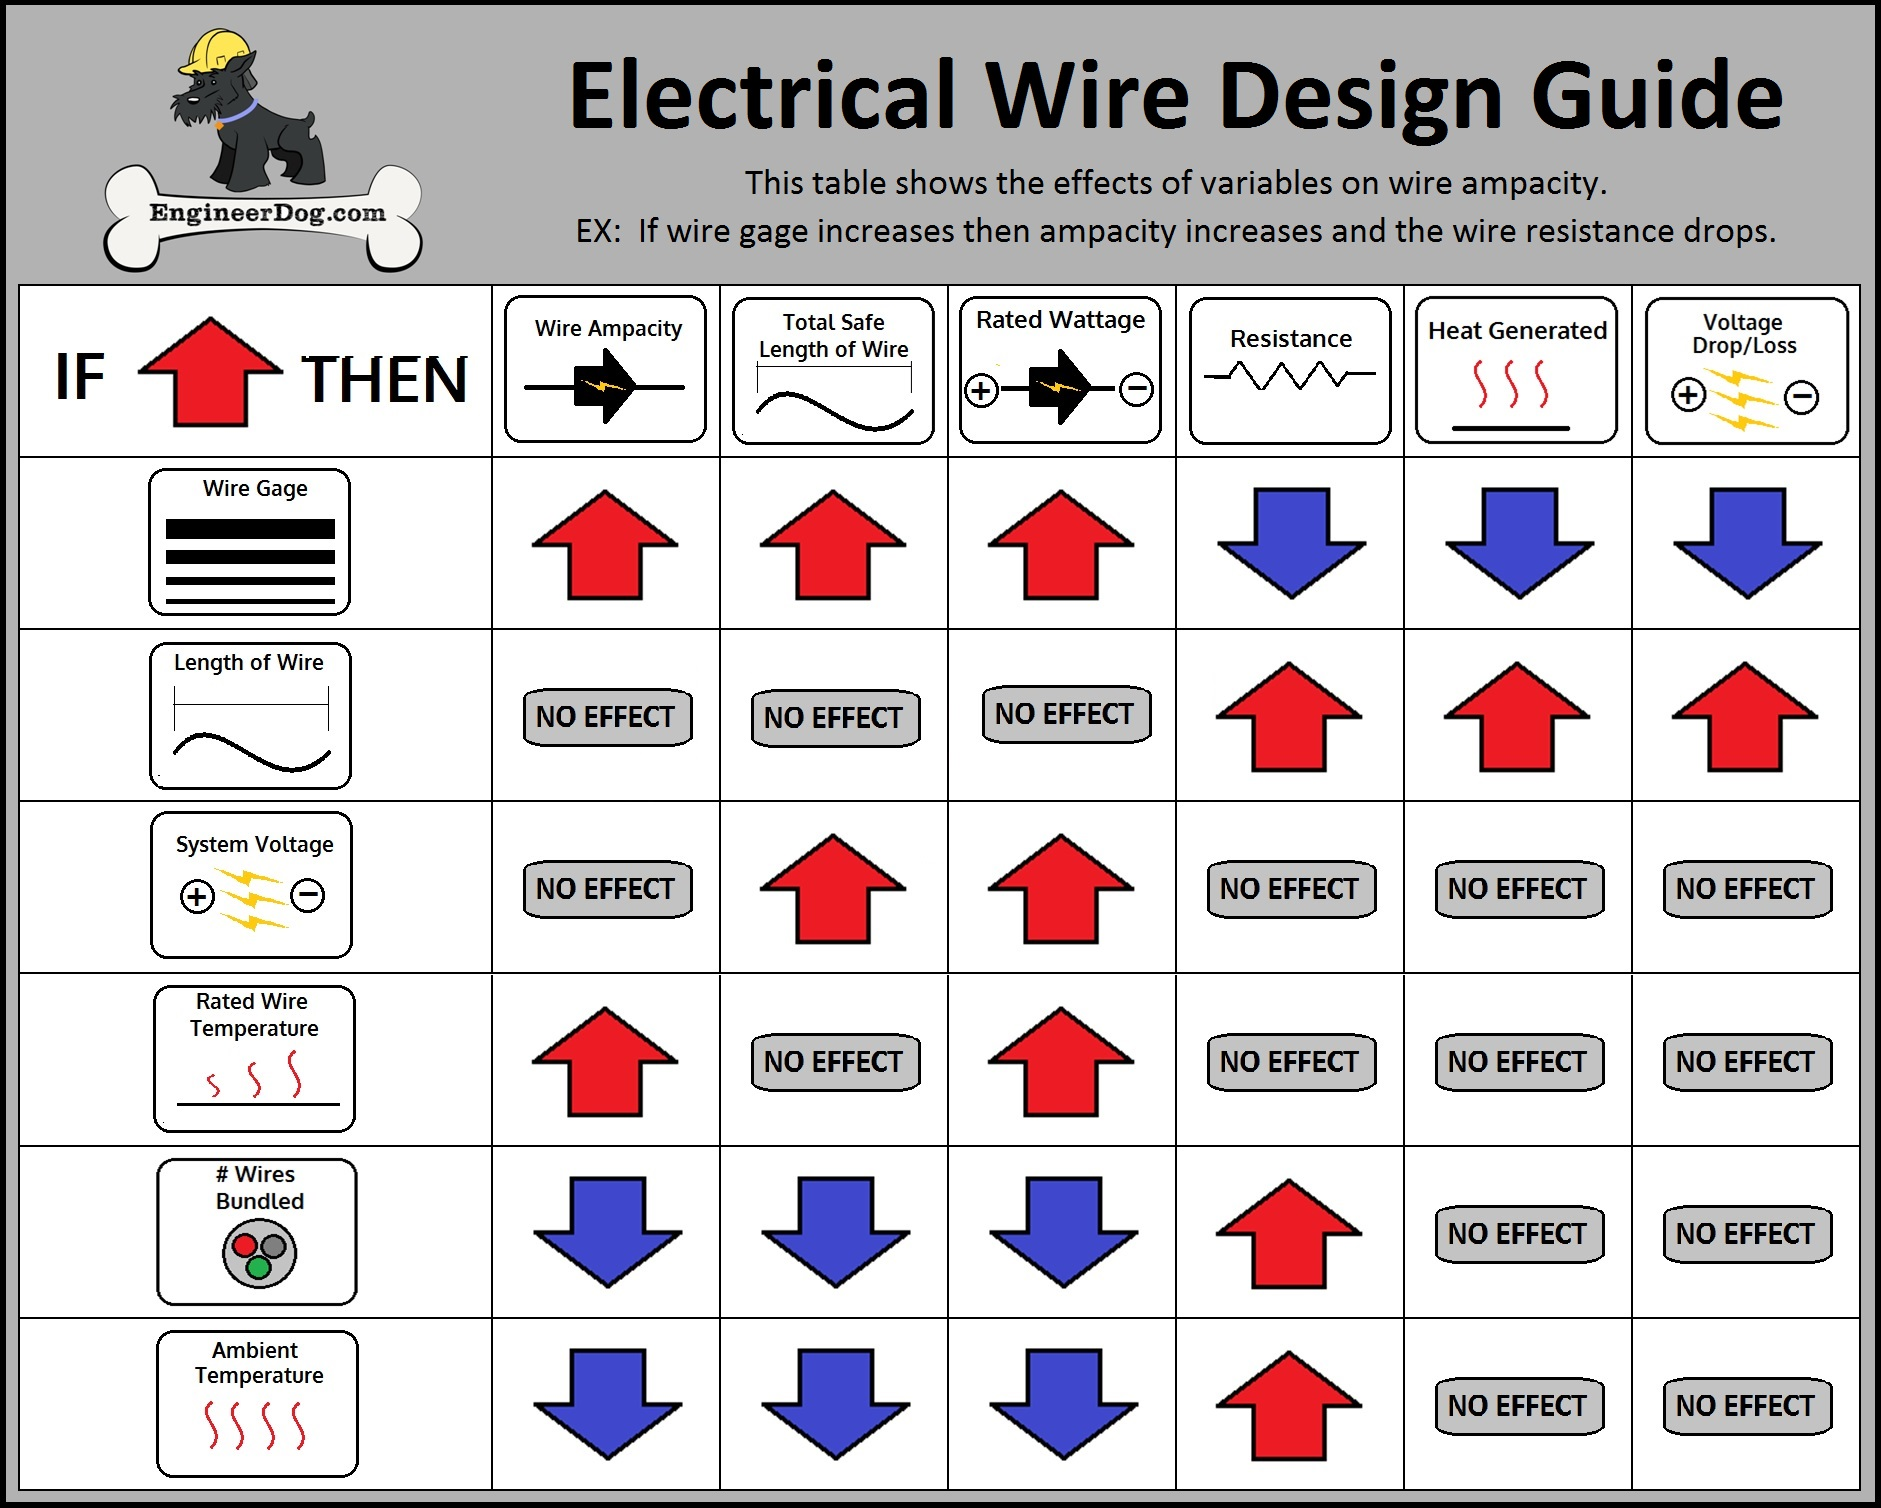 Electrical wire gauge wire center free electrical wire gauge sizing calculator engineerdog rh engineerdog com electrical wire gauge chart pdf electrical greentooth